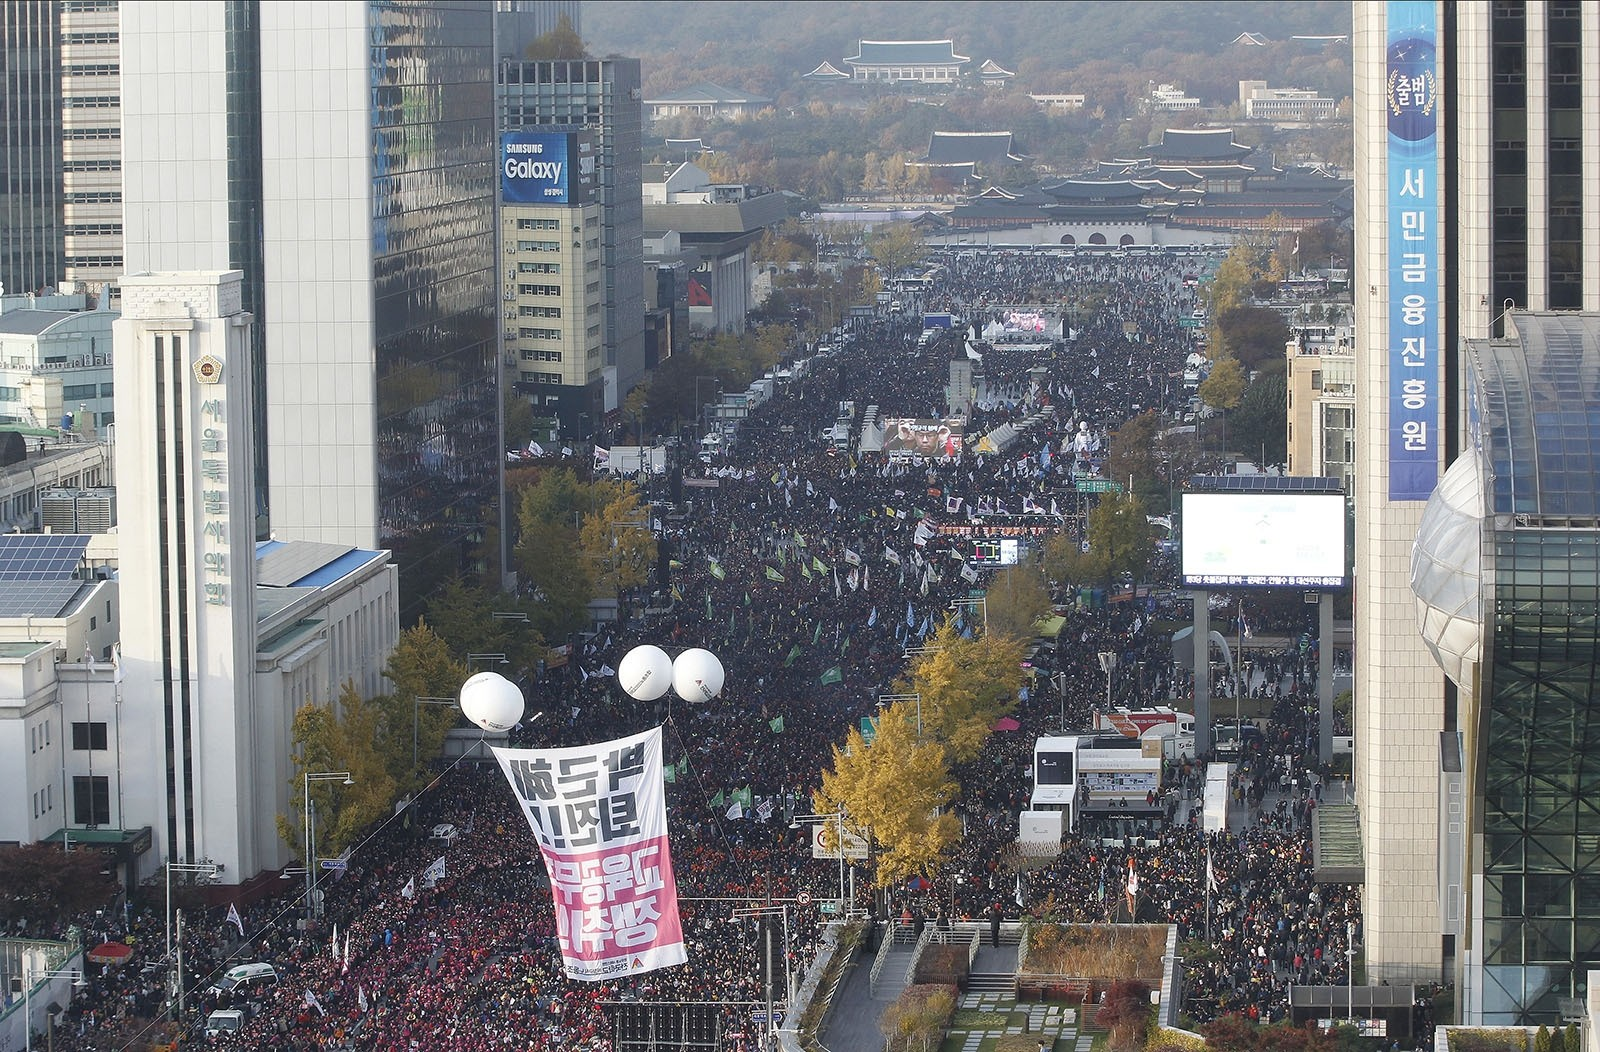 Protesters stage a rally calling for South Korean President Park Geun-hye to step down in Seoul, South Korea, Saturday, Nov. 12, 2016. (AP Photo)